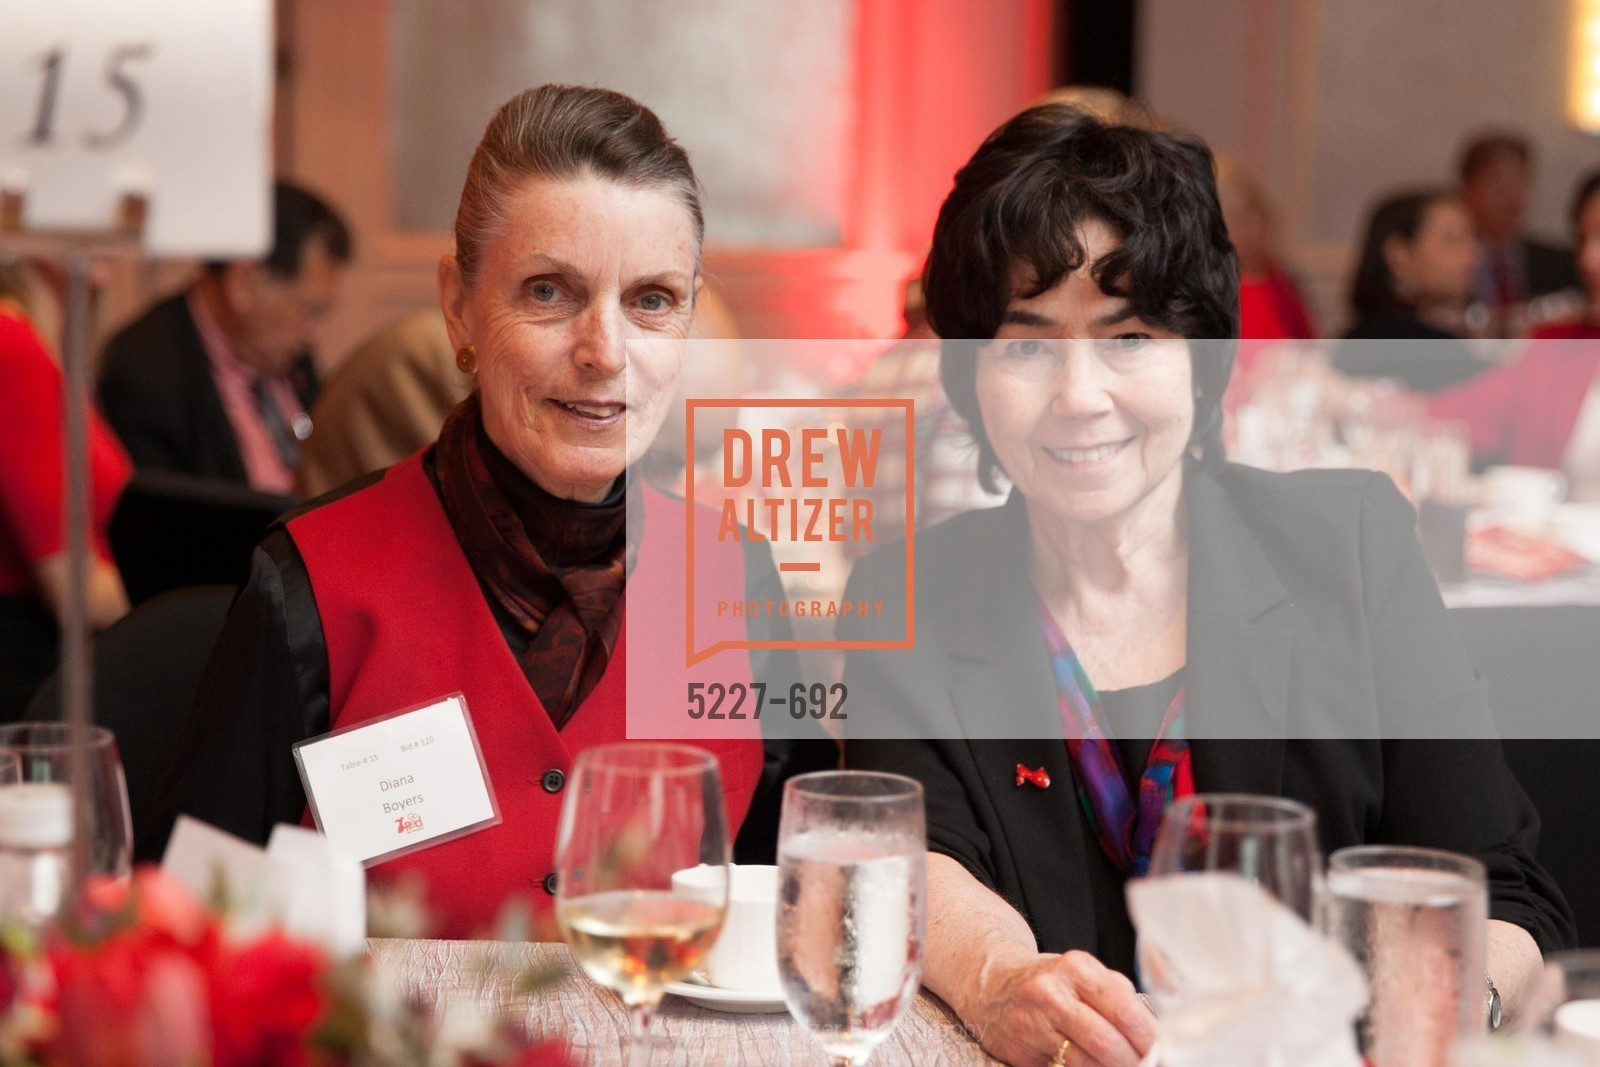 Diana Boyers, Conchita Miller, 2015 GoRed for Women Luncheon, US, May 2nd, 2015,Drew Altizer, Drew Altizer Photography, full-service agency, private events, San Francisco photographer, photographer california